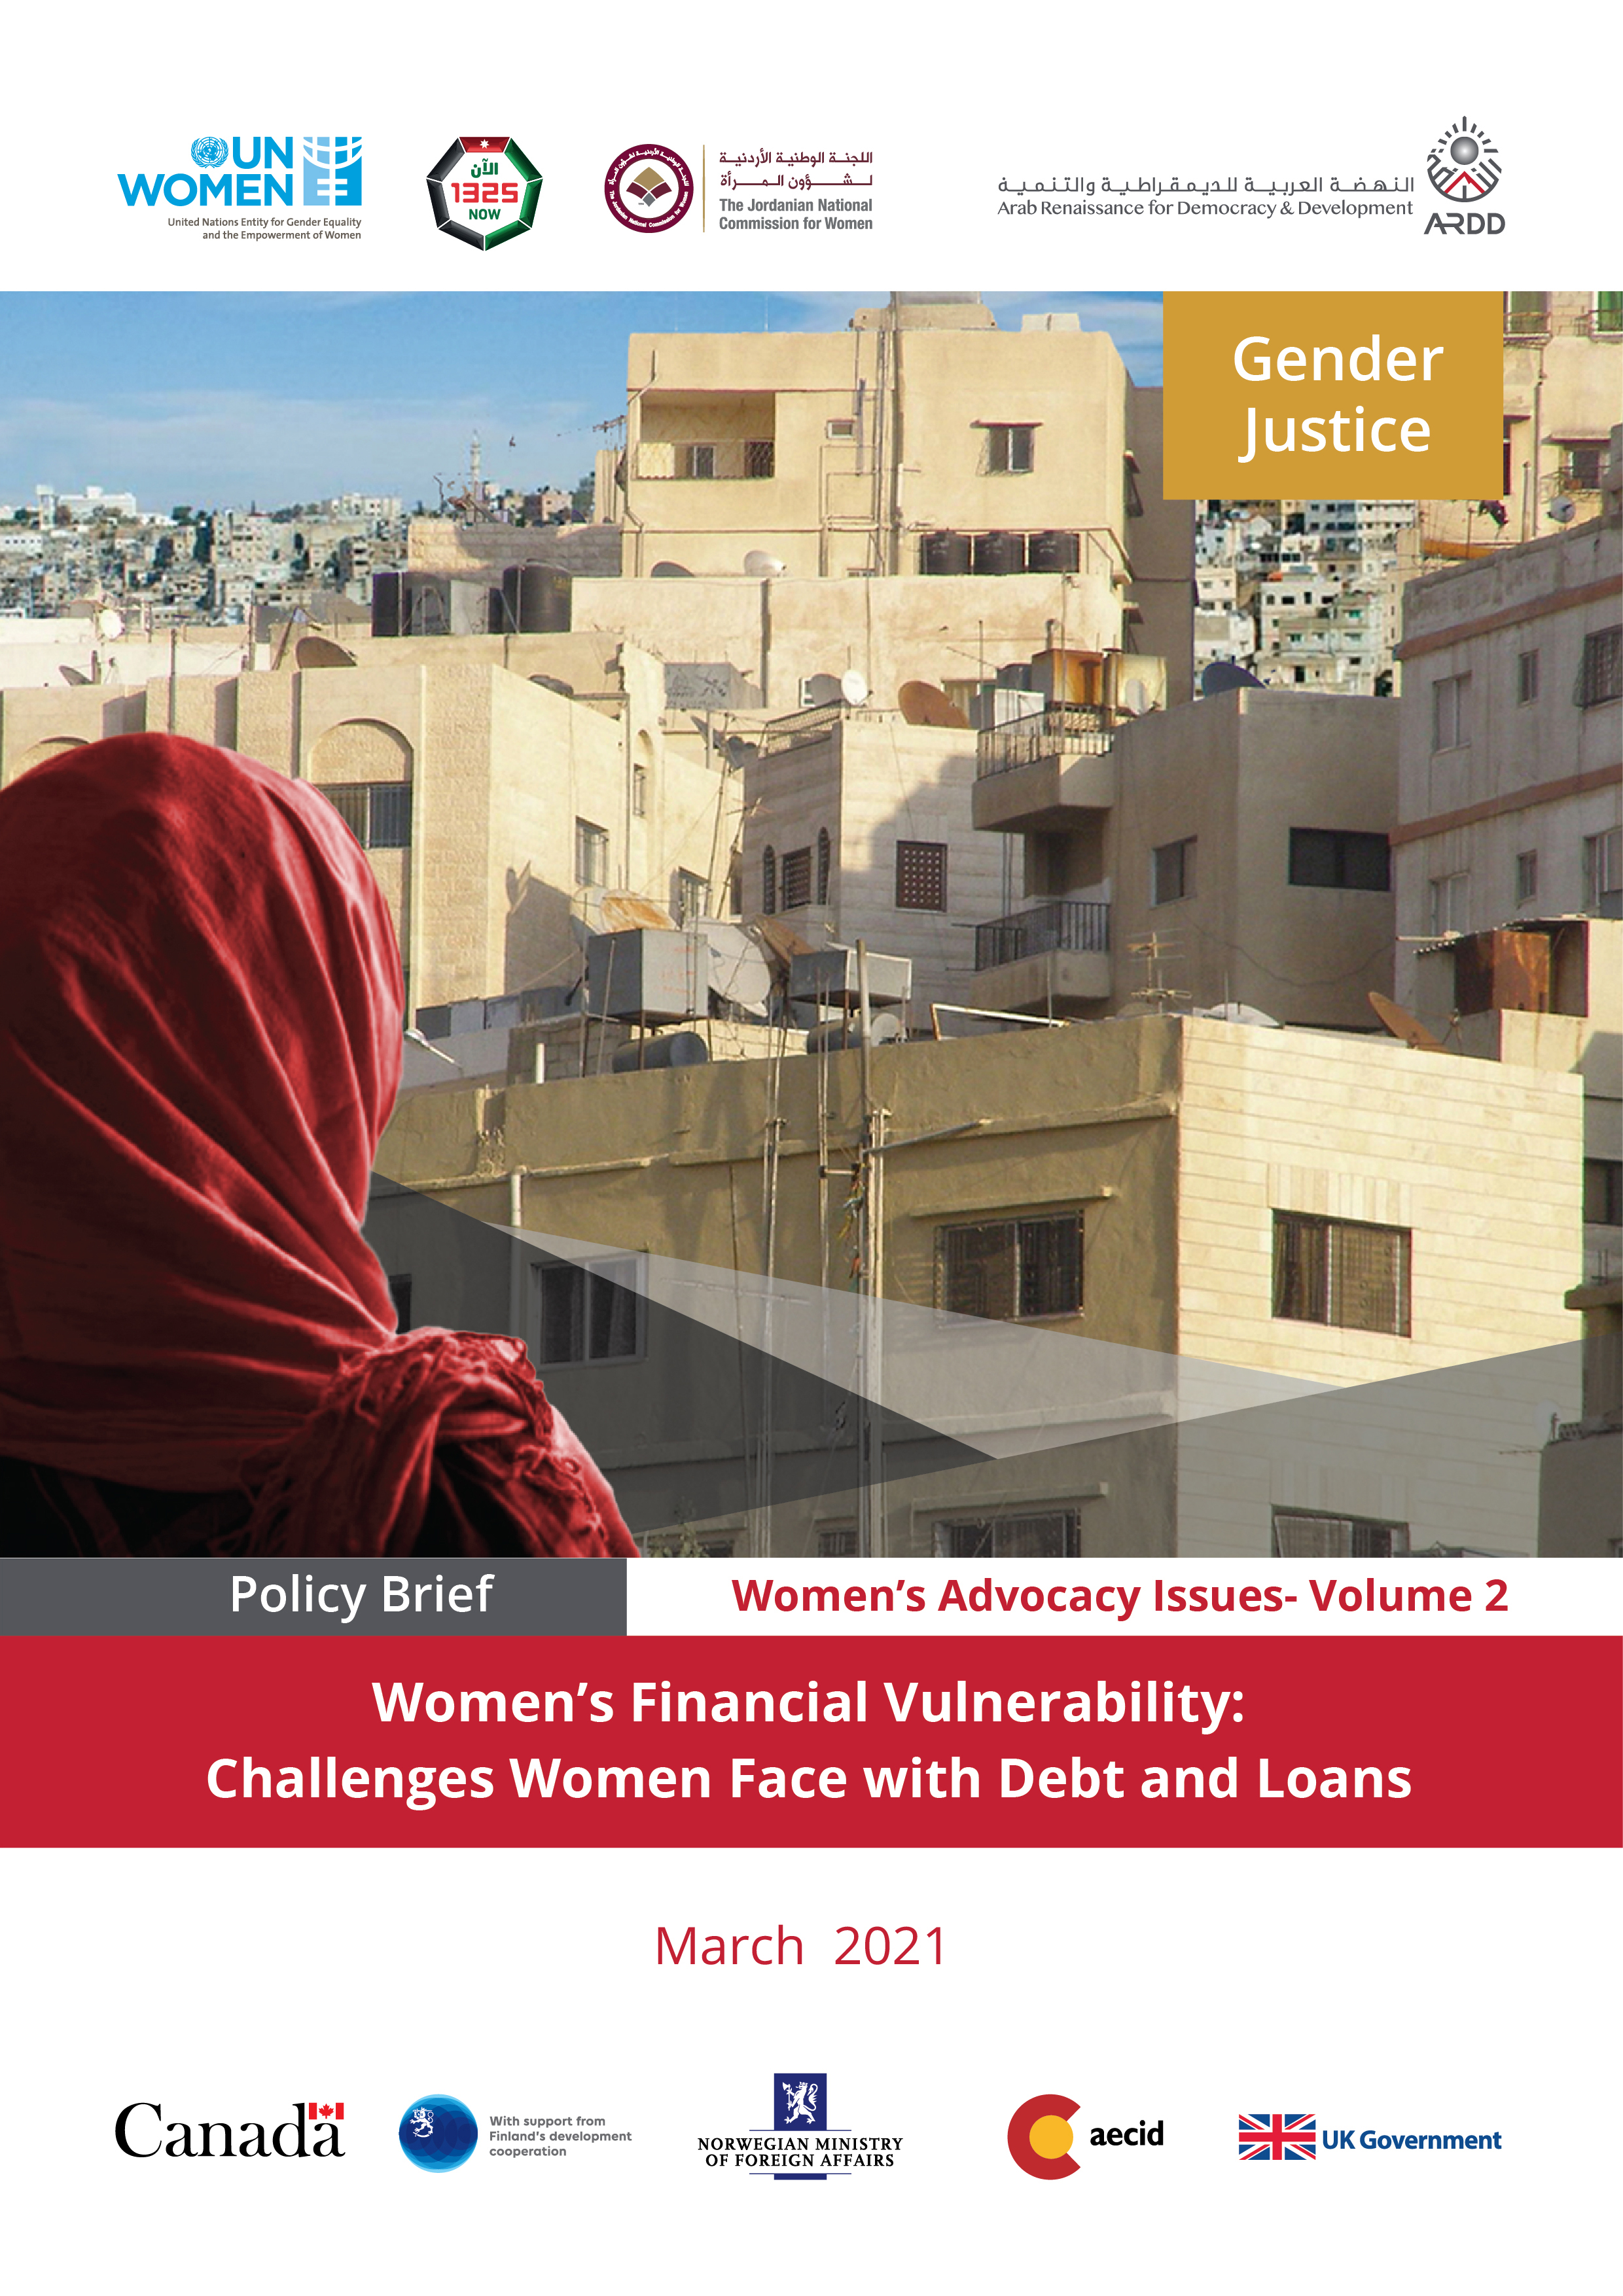 Women's Financial Vulnerability: Challenges Women Face with Debt and Loans